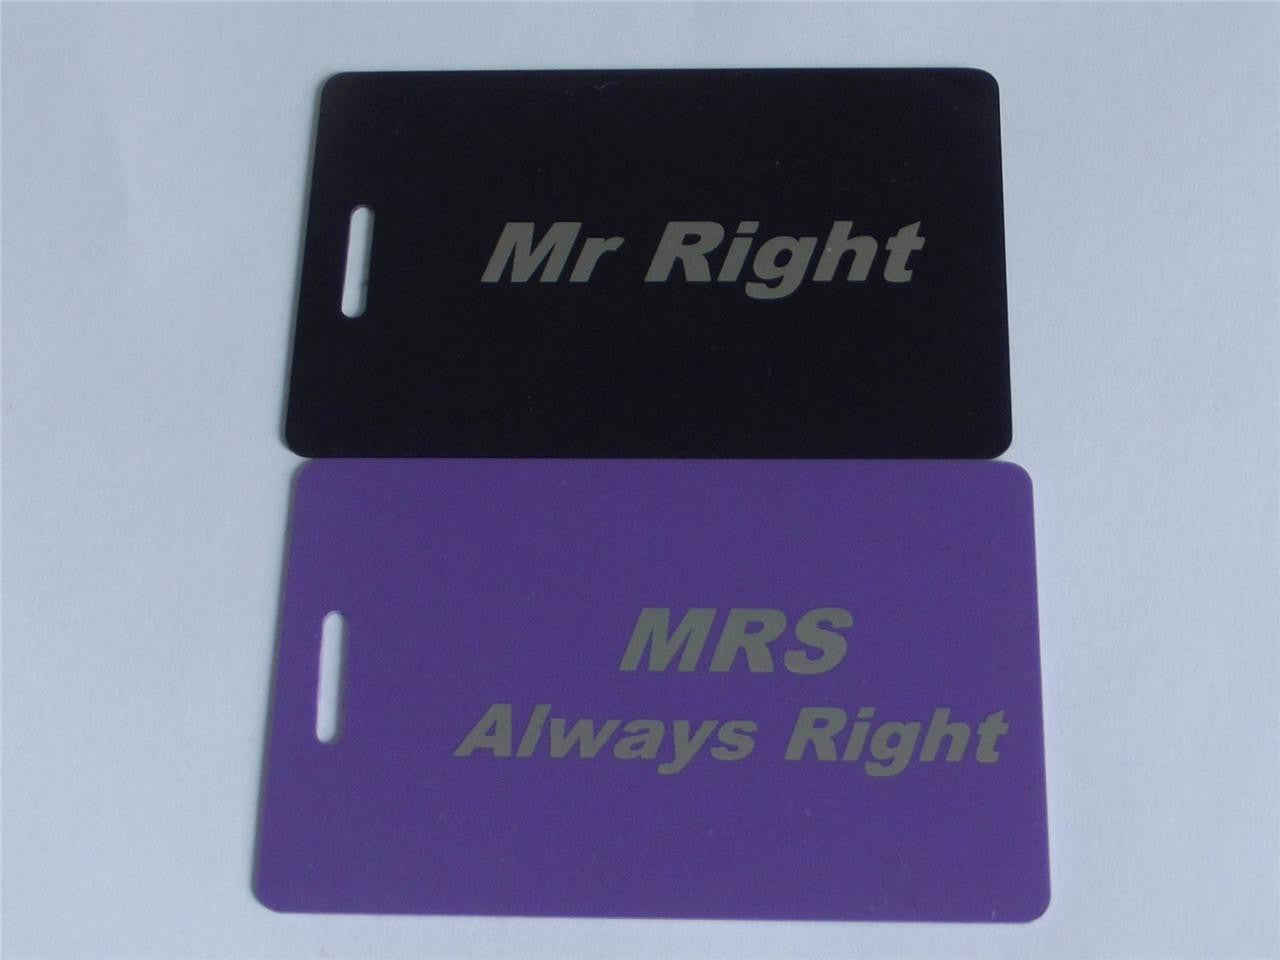 Novelty MR RIGHT /MRS ALWAYS RIGHT  LUGGAGE Tagg -  Inflightgoods   - 2